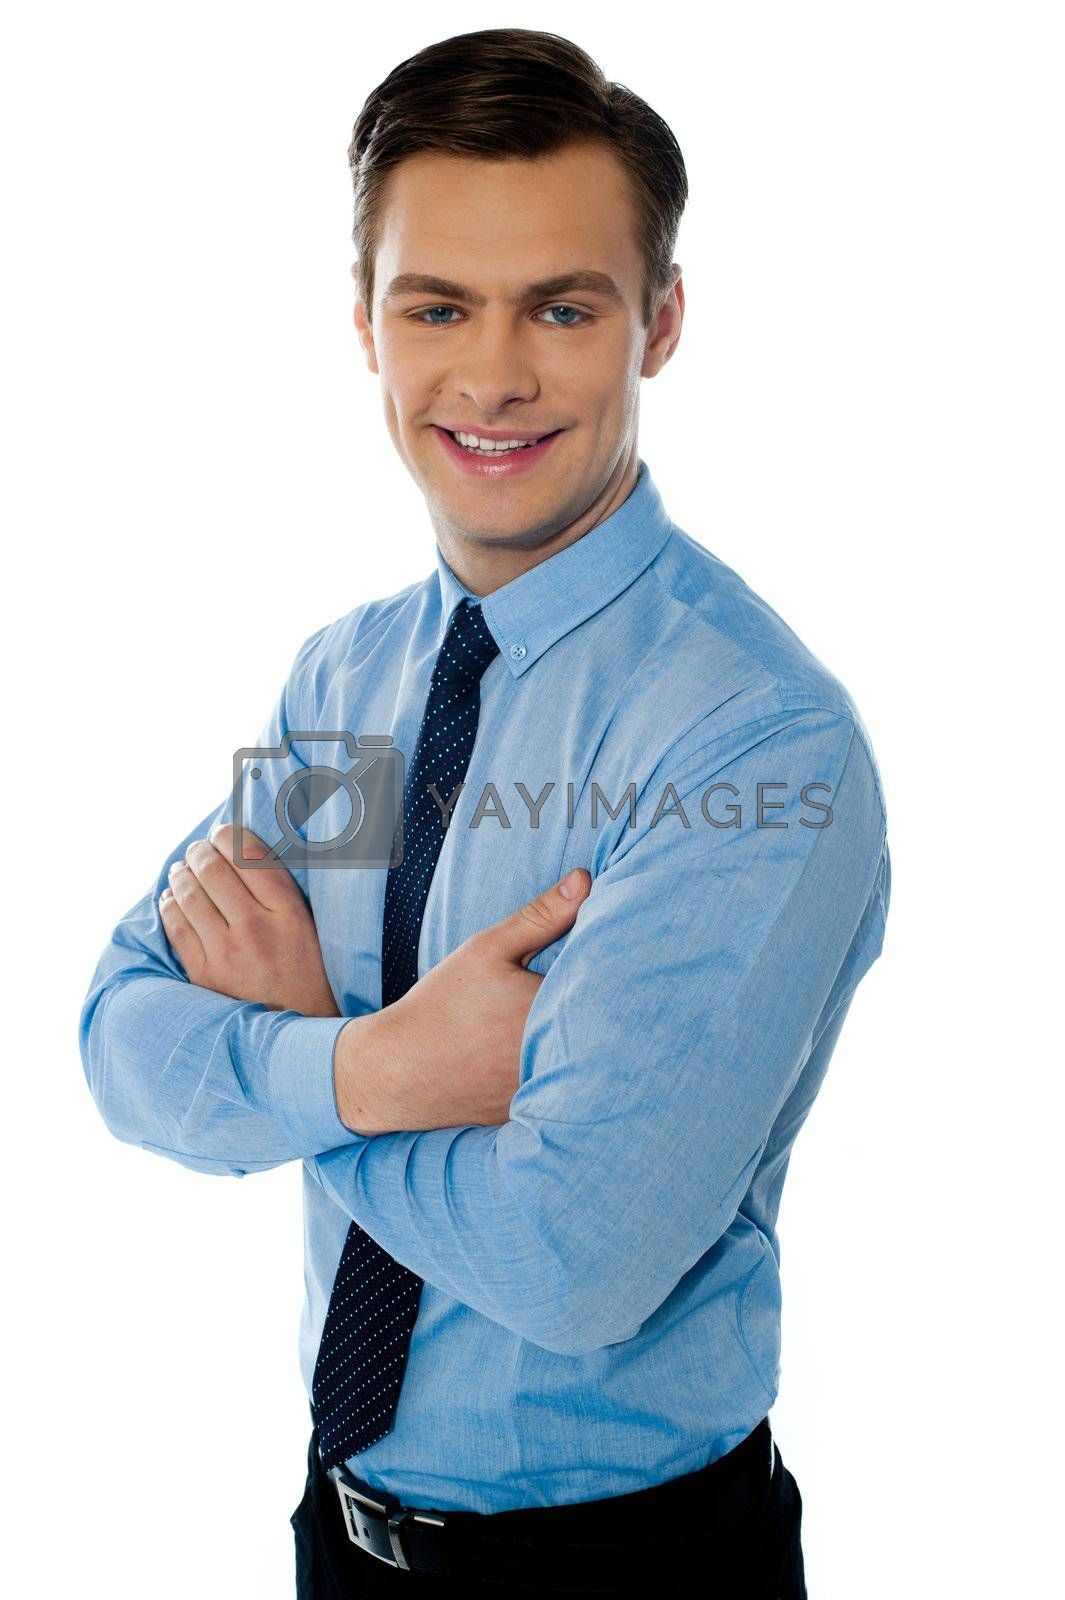 Successful businessman posing with folded arms on white background